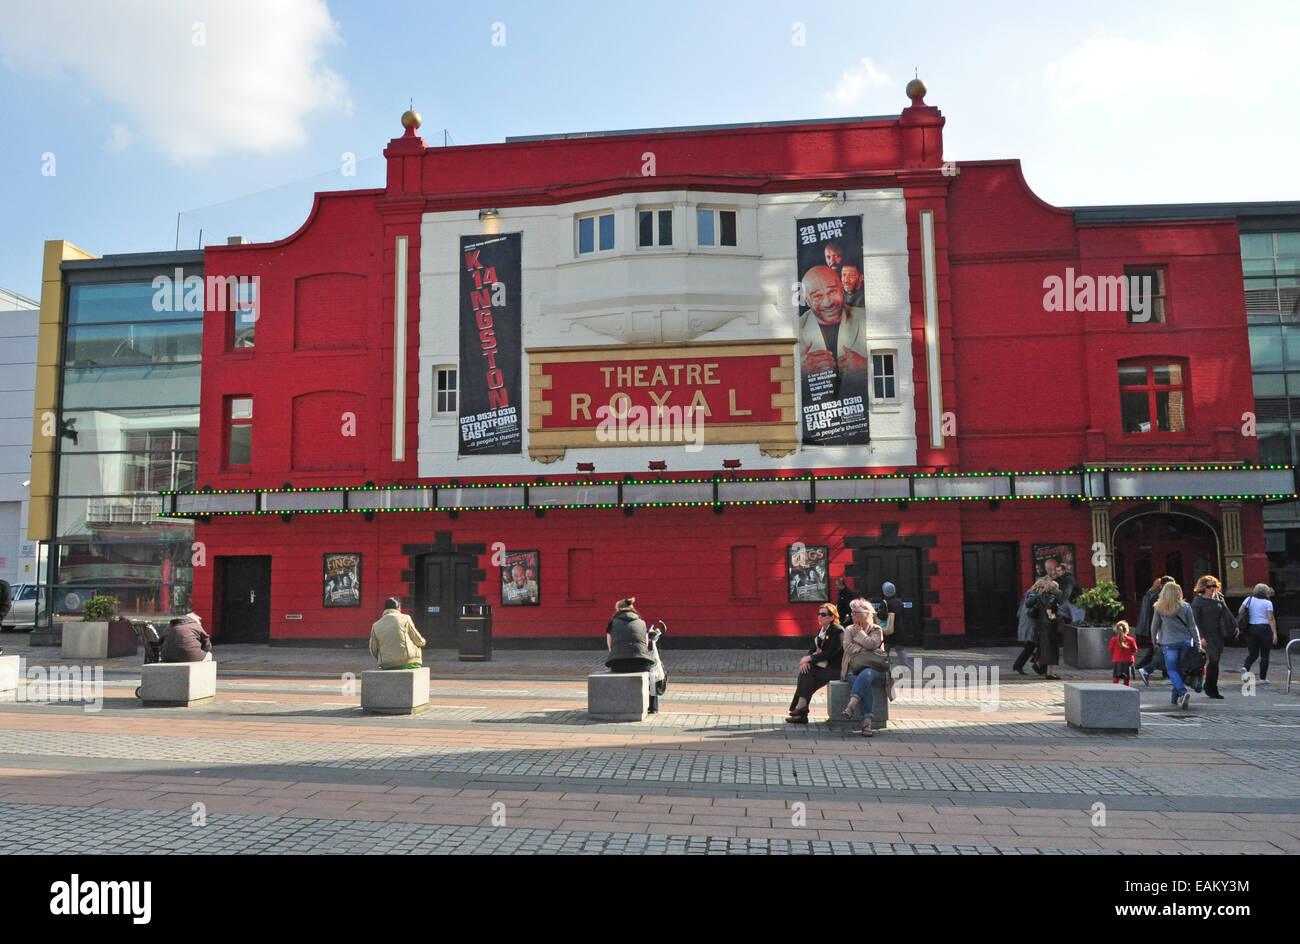 THEATRE ROYAL STRATFORD EAST LONDON UK - Stock Image